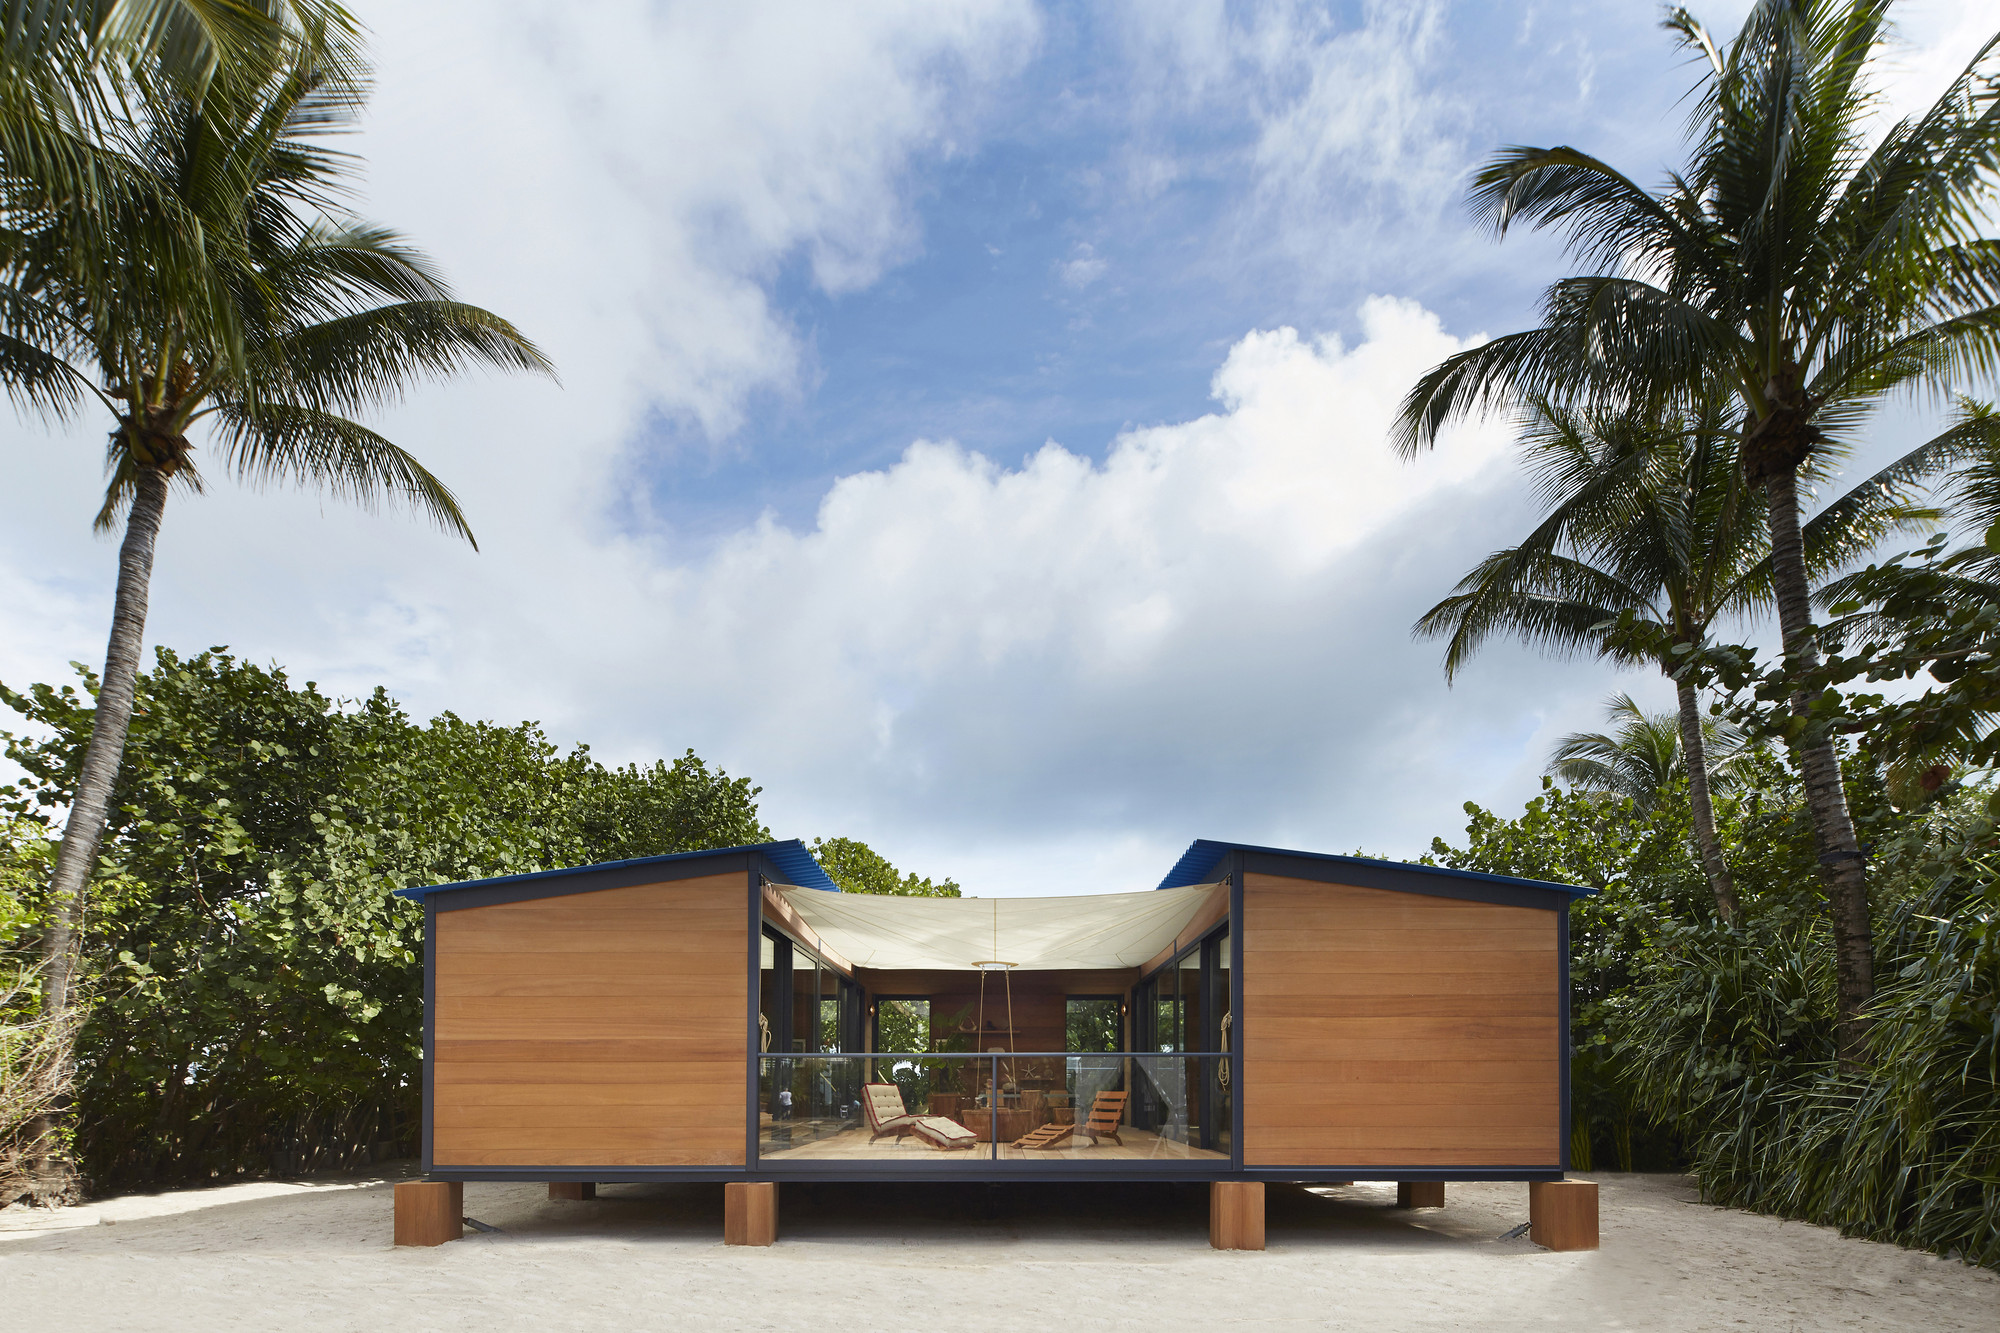 Louis Vuitton Builds Charlotte Perriand S 1934 Miami Beach House